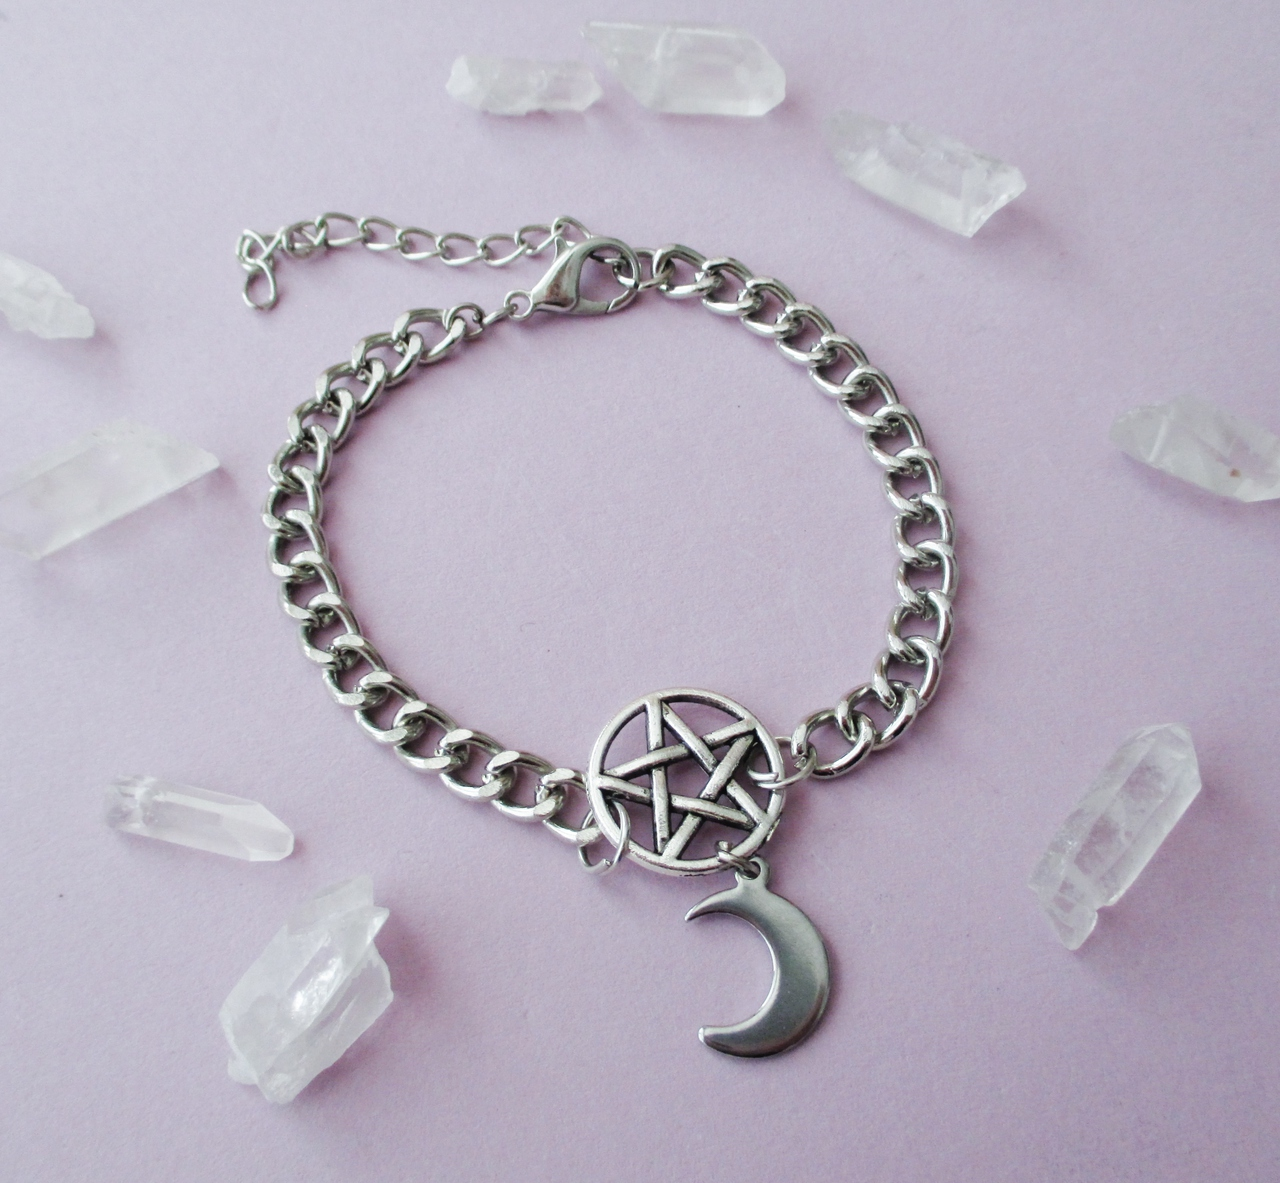 aesthetic, alternative, crystals and fashion